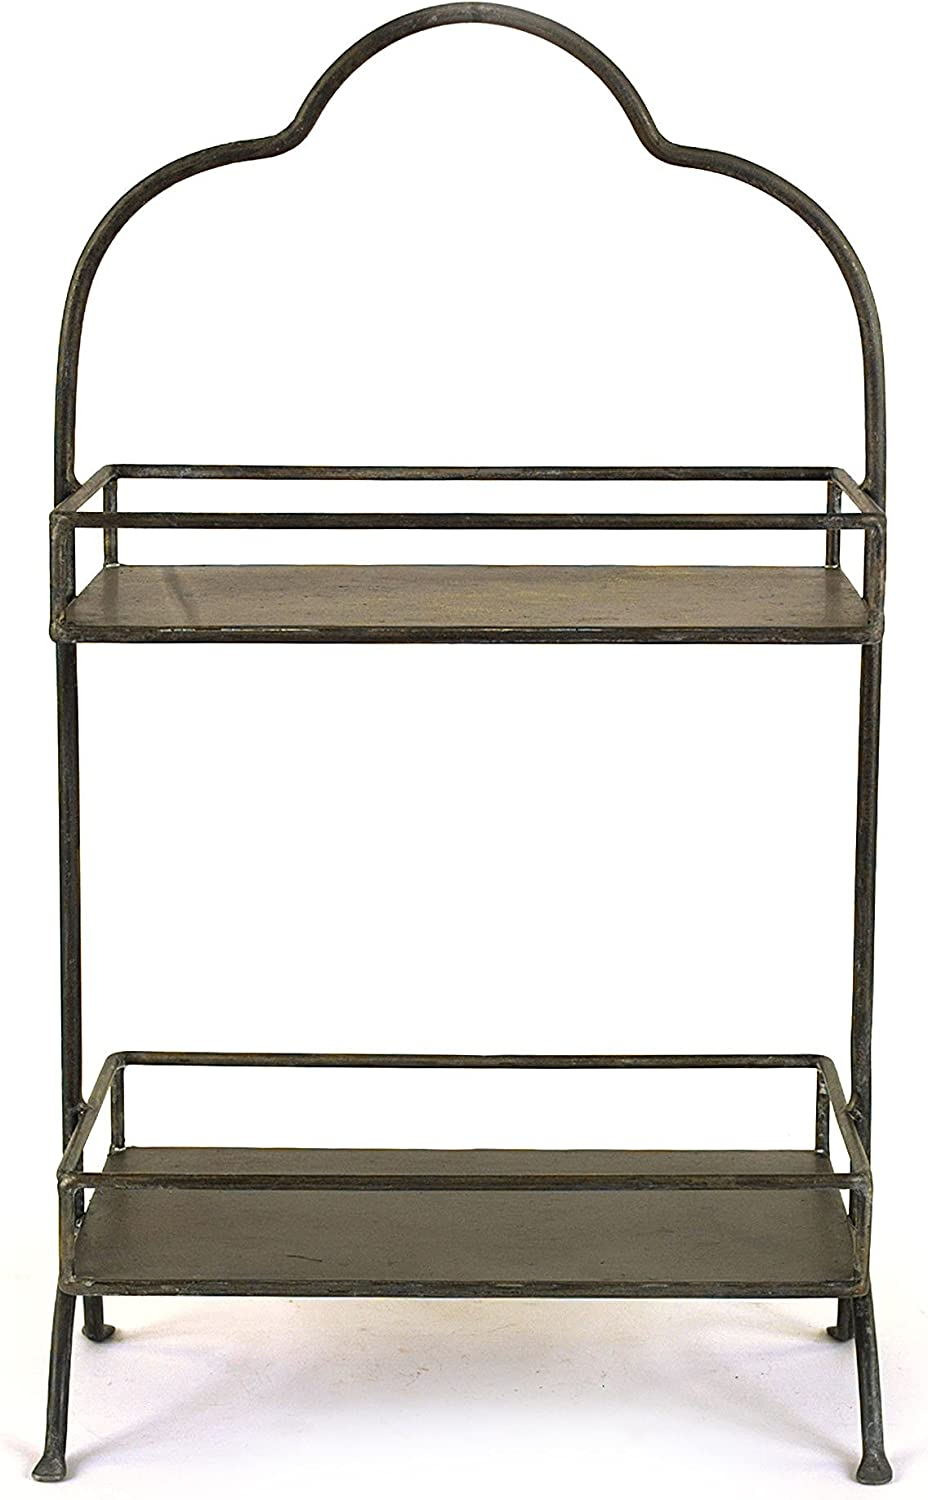 "Creative Co-op Decorative Metal Two Tier Tray with Handle, 10.6"" L x 5.9"" W x 17.9"" H: Home & Kitchen"